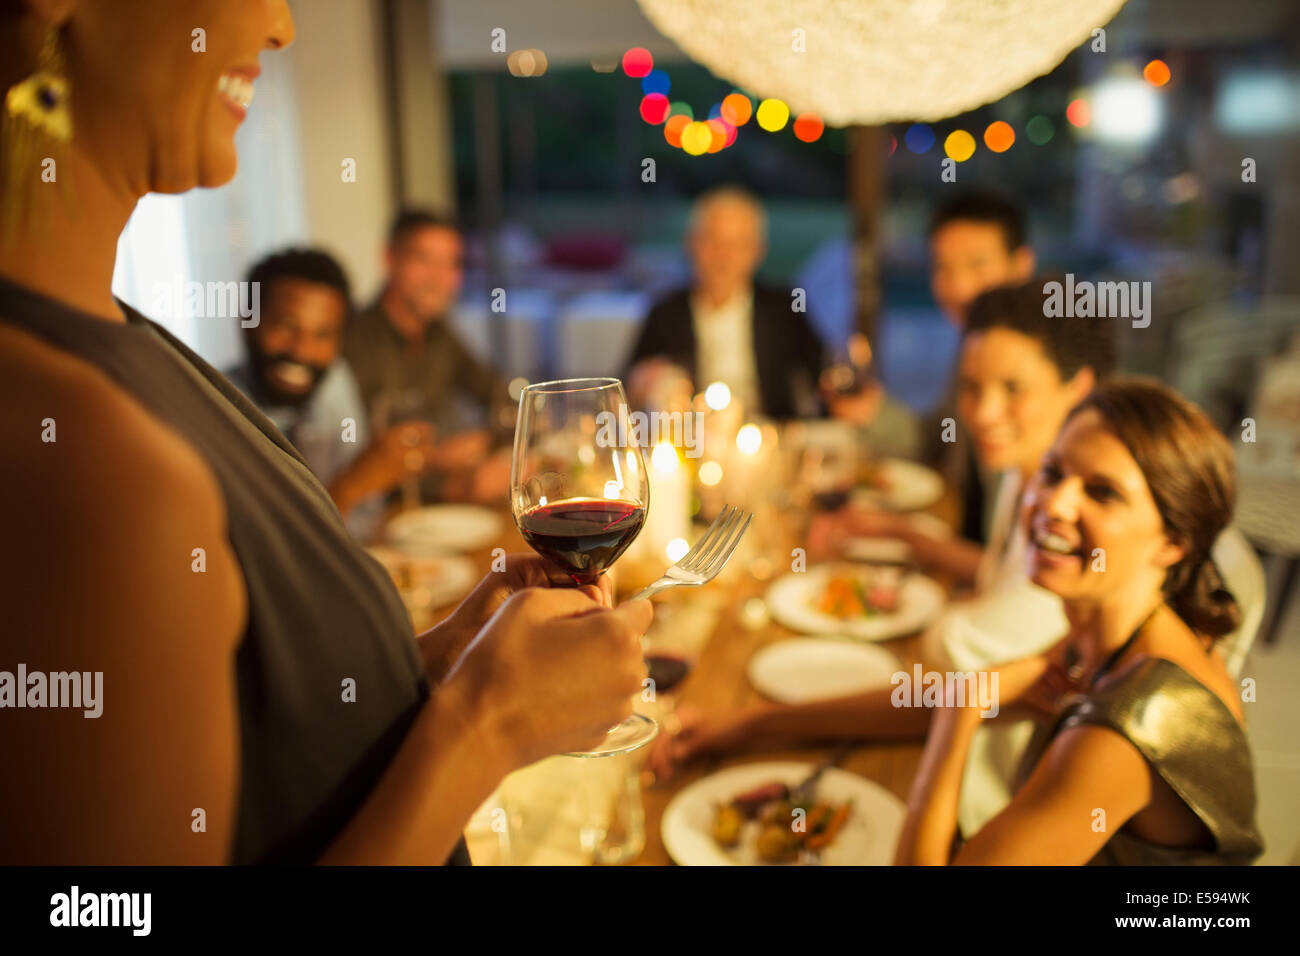 Femme proposer un toast at party Photo Stock